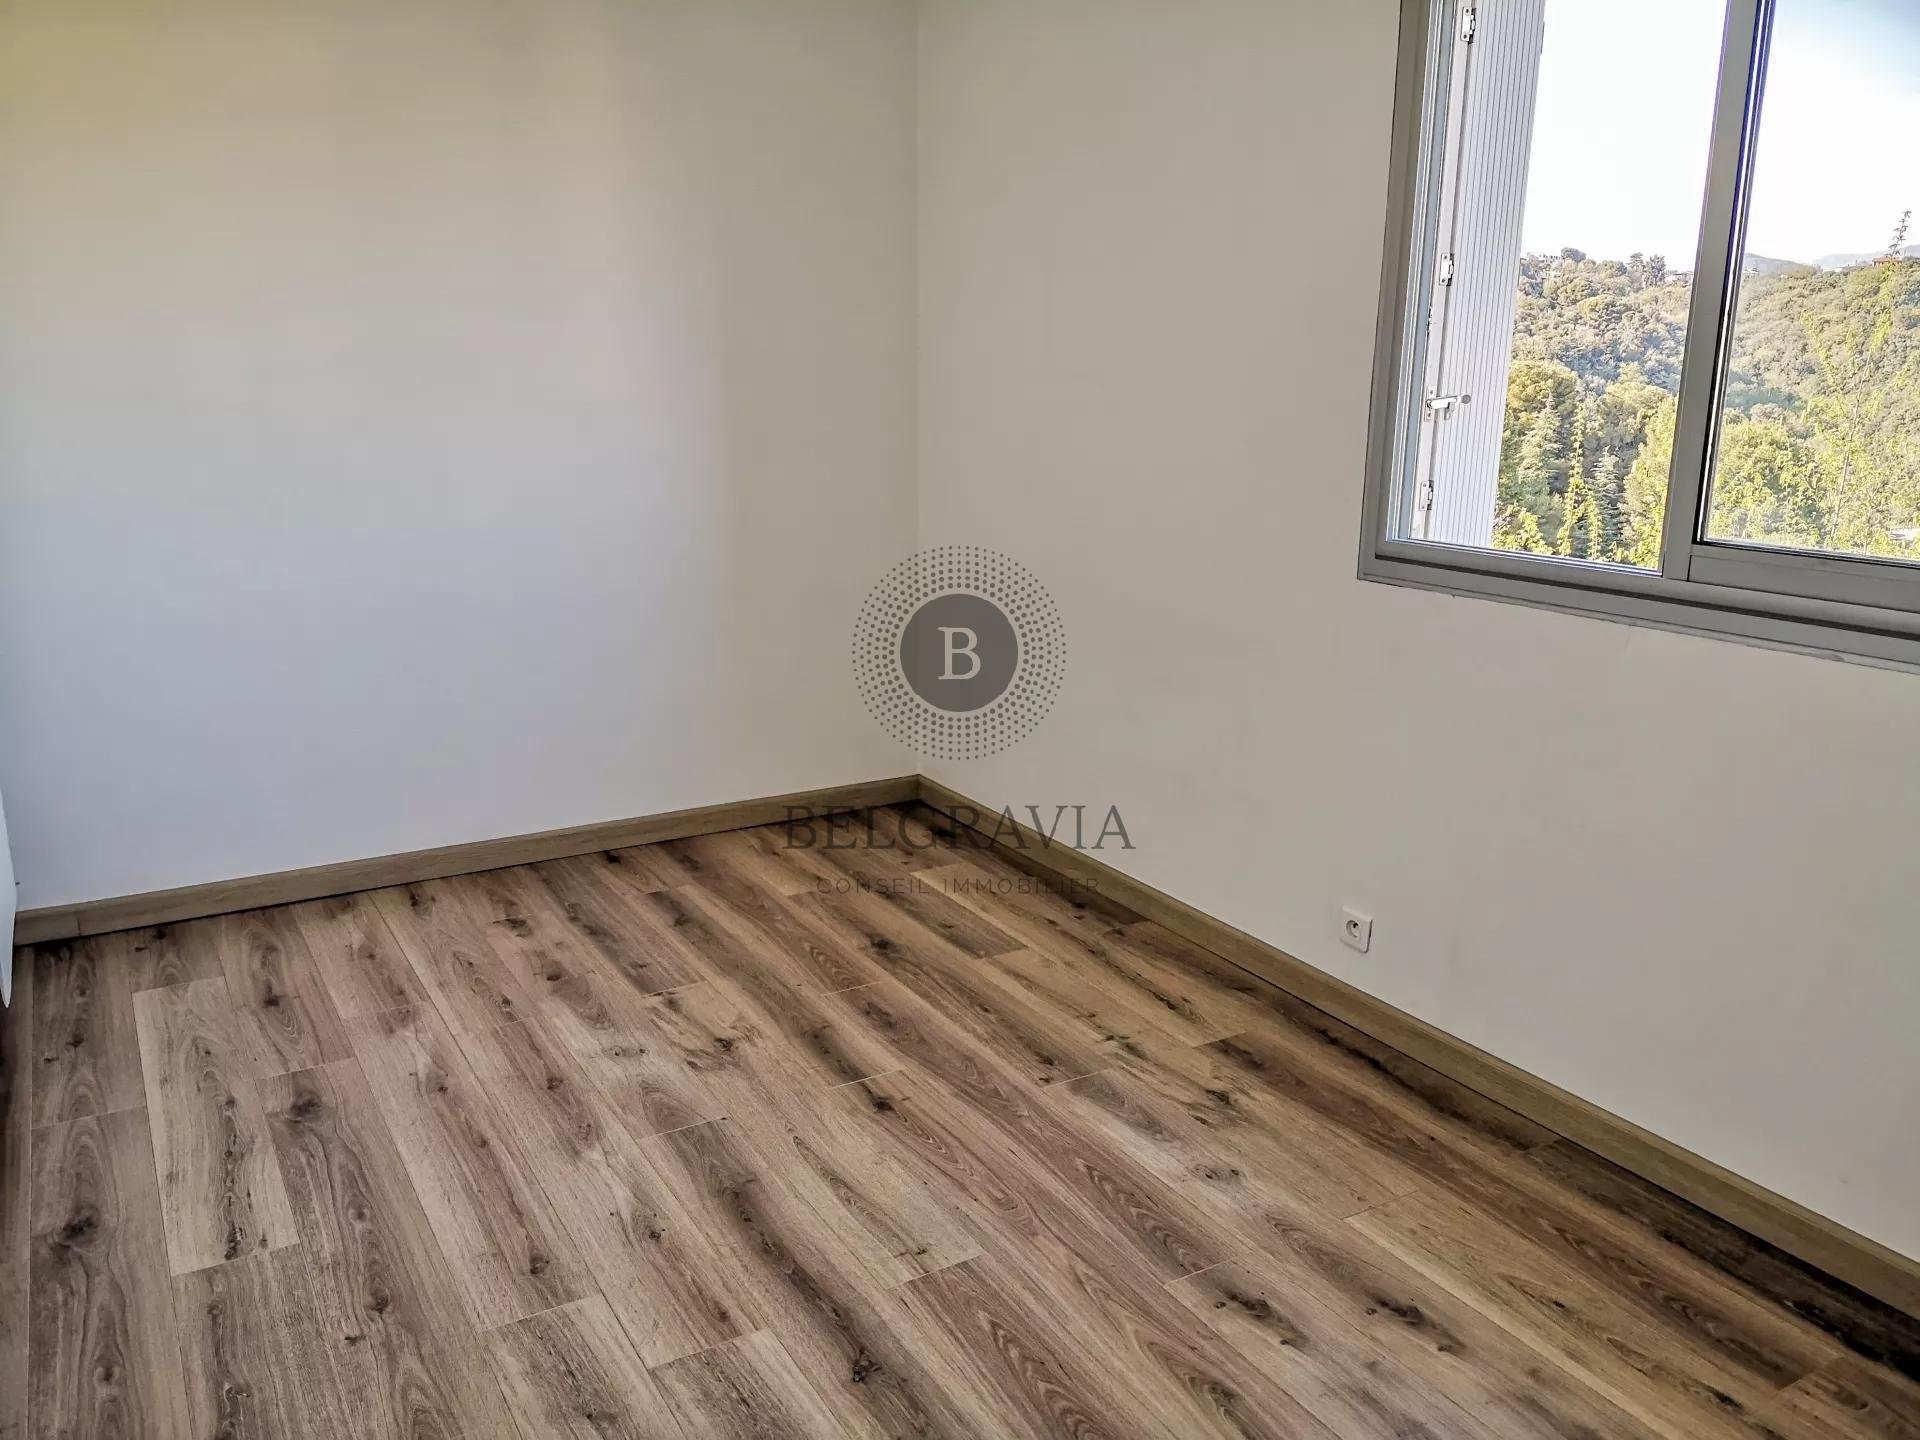 3 Rooms - Terrace with clear view - Garage - Cellar